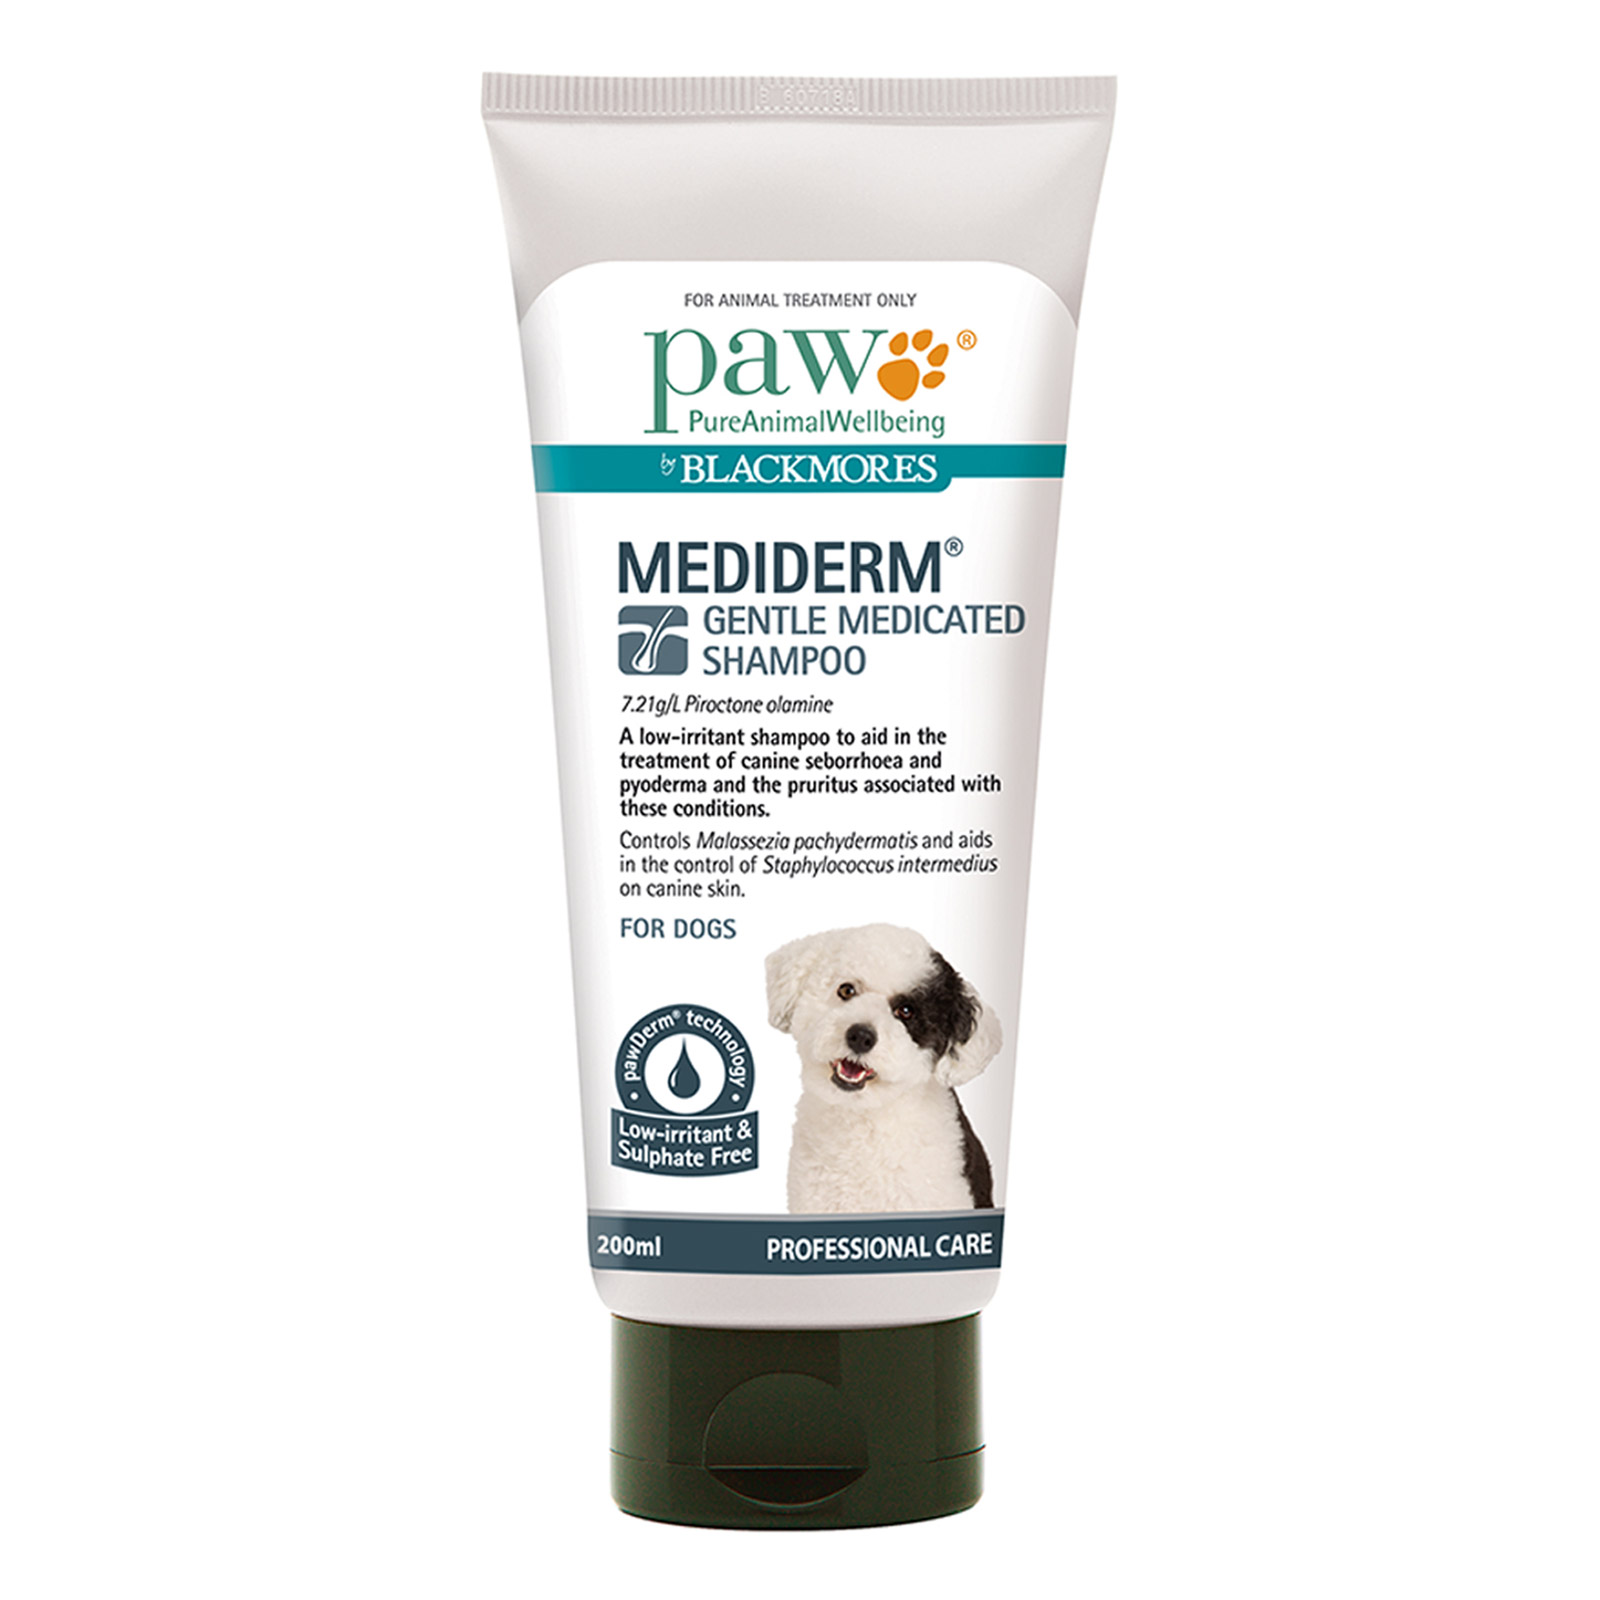 Paw Mediderm Shampoo For Dogs